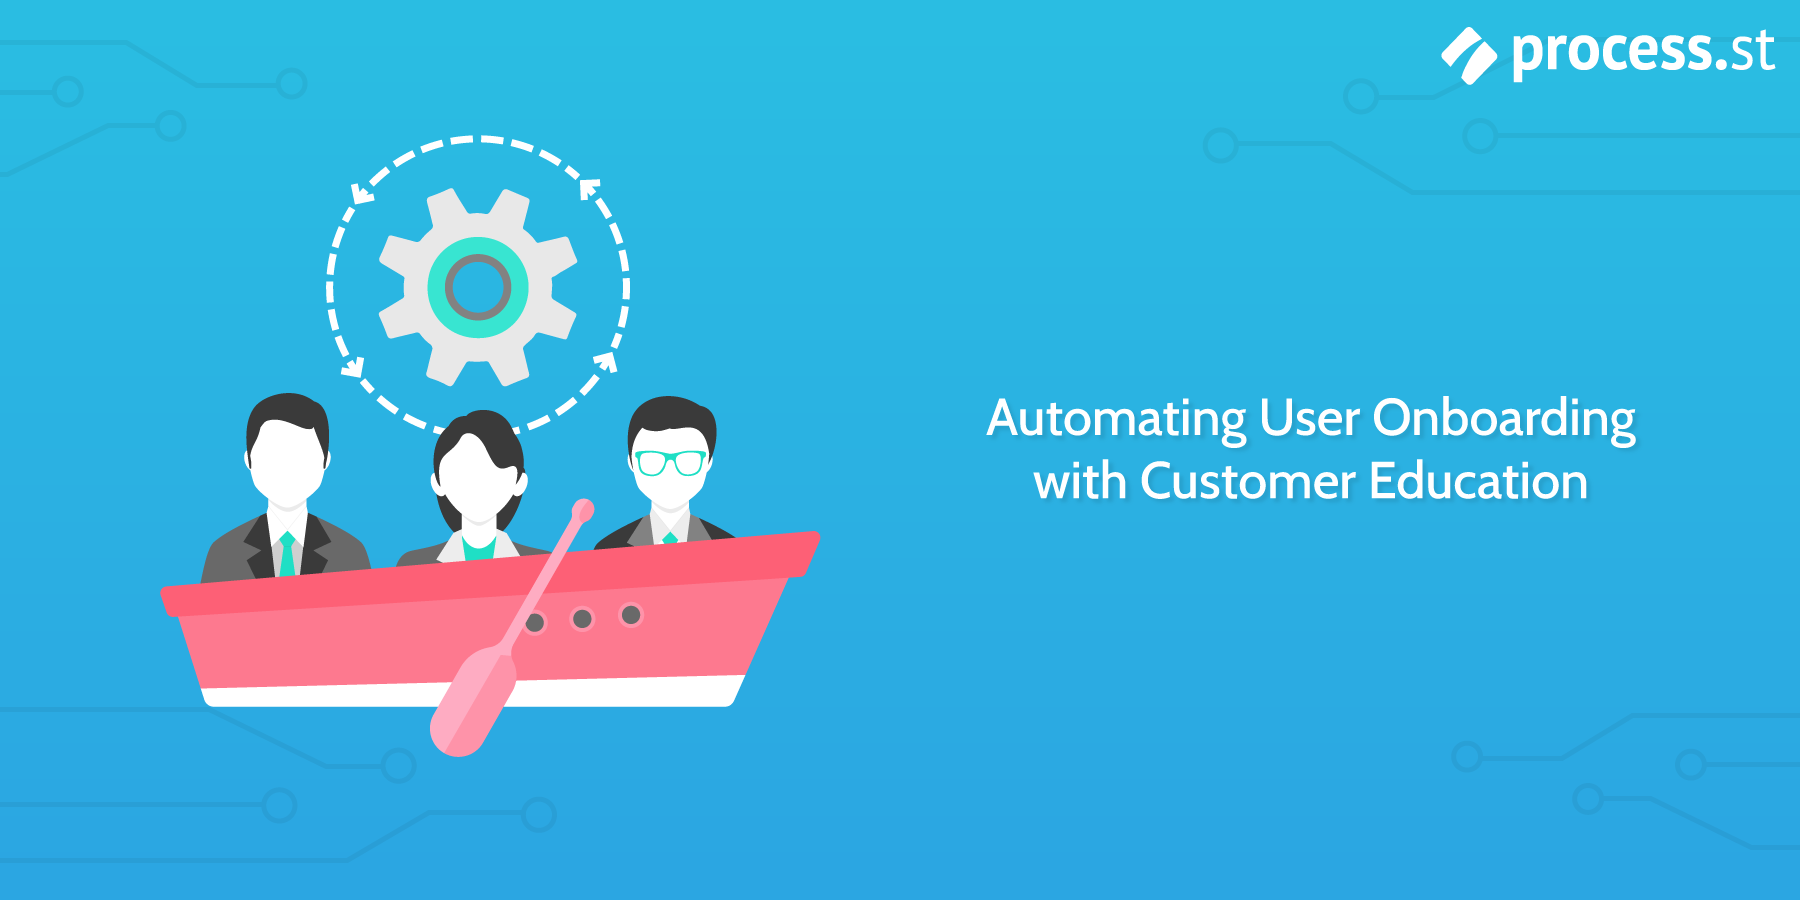 How to automate user onboarding with customer education